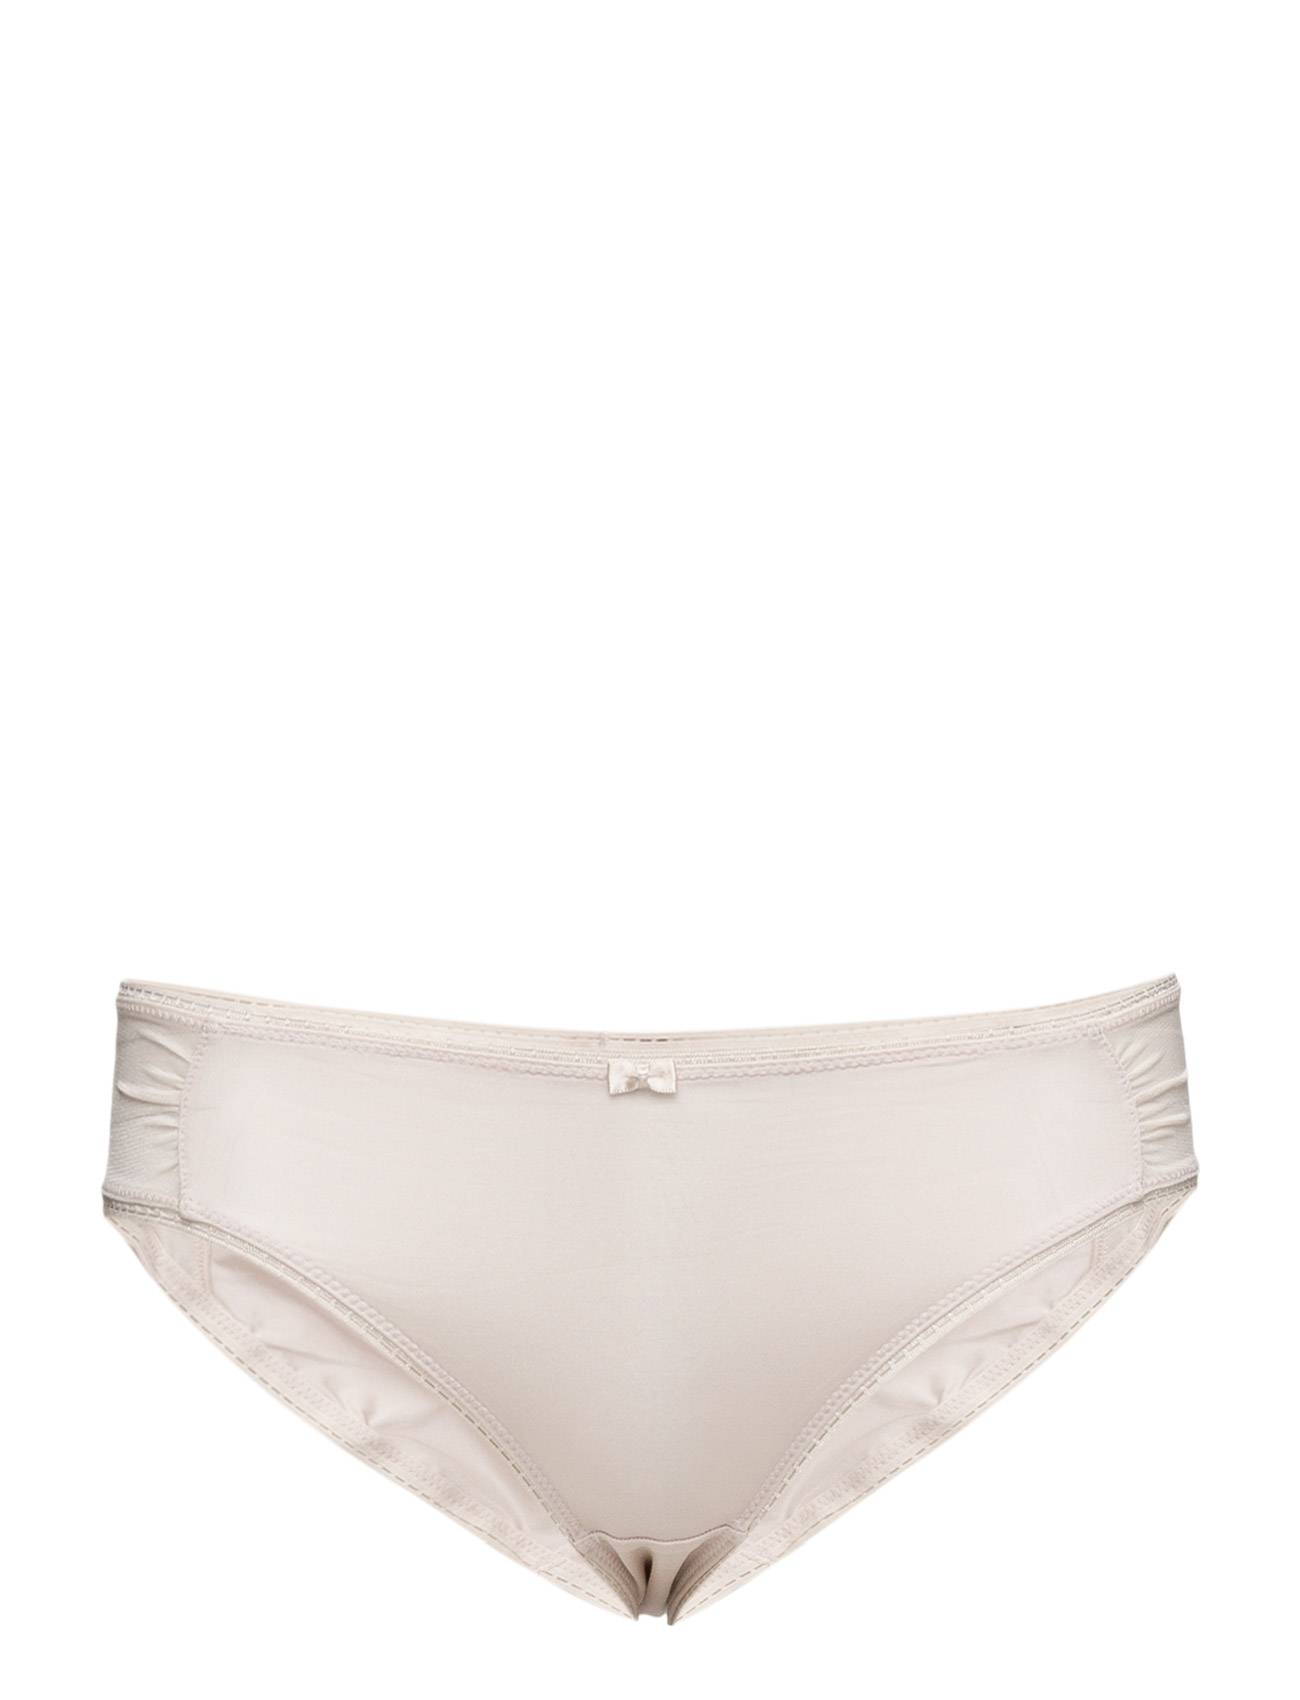 Femilet Platinum - Tai Brief